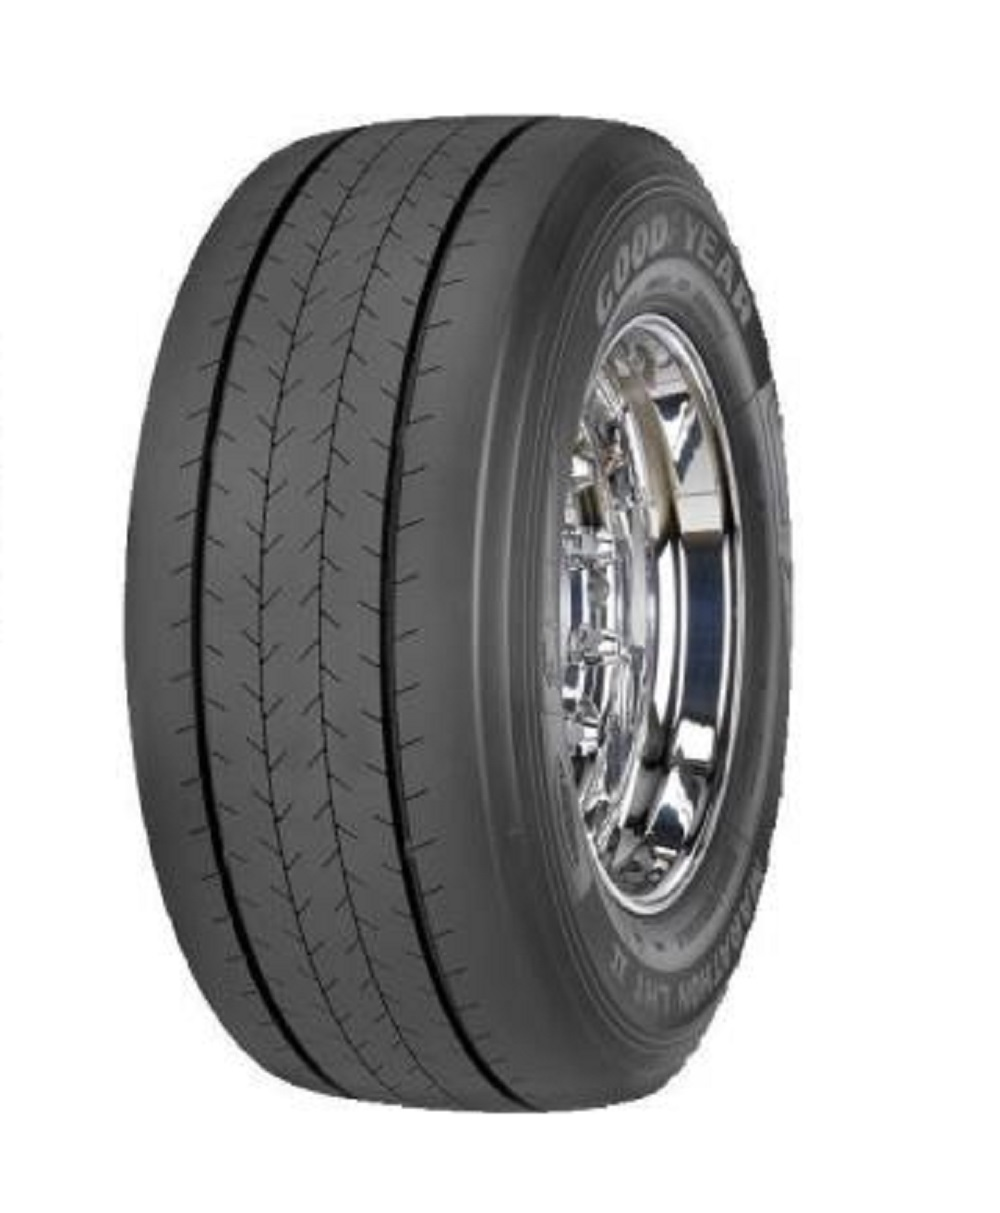 Anvelopa trailer GOODYEAR treadmax lht-2 c1 435/50 R19.5 160J